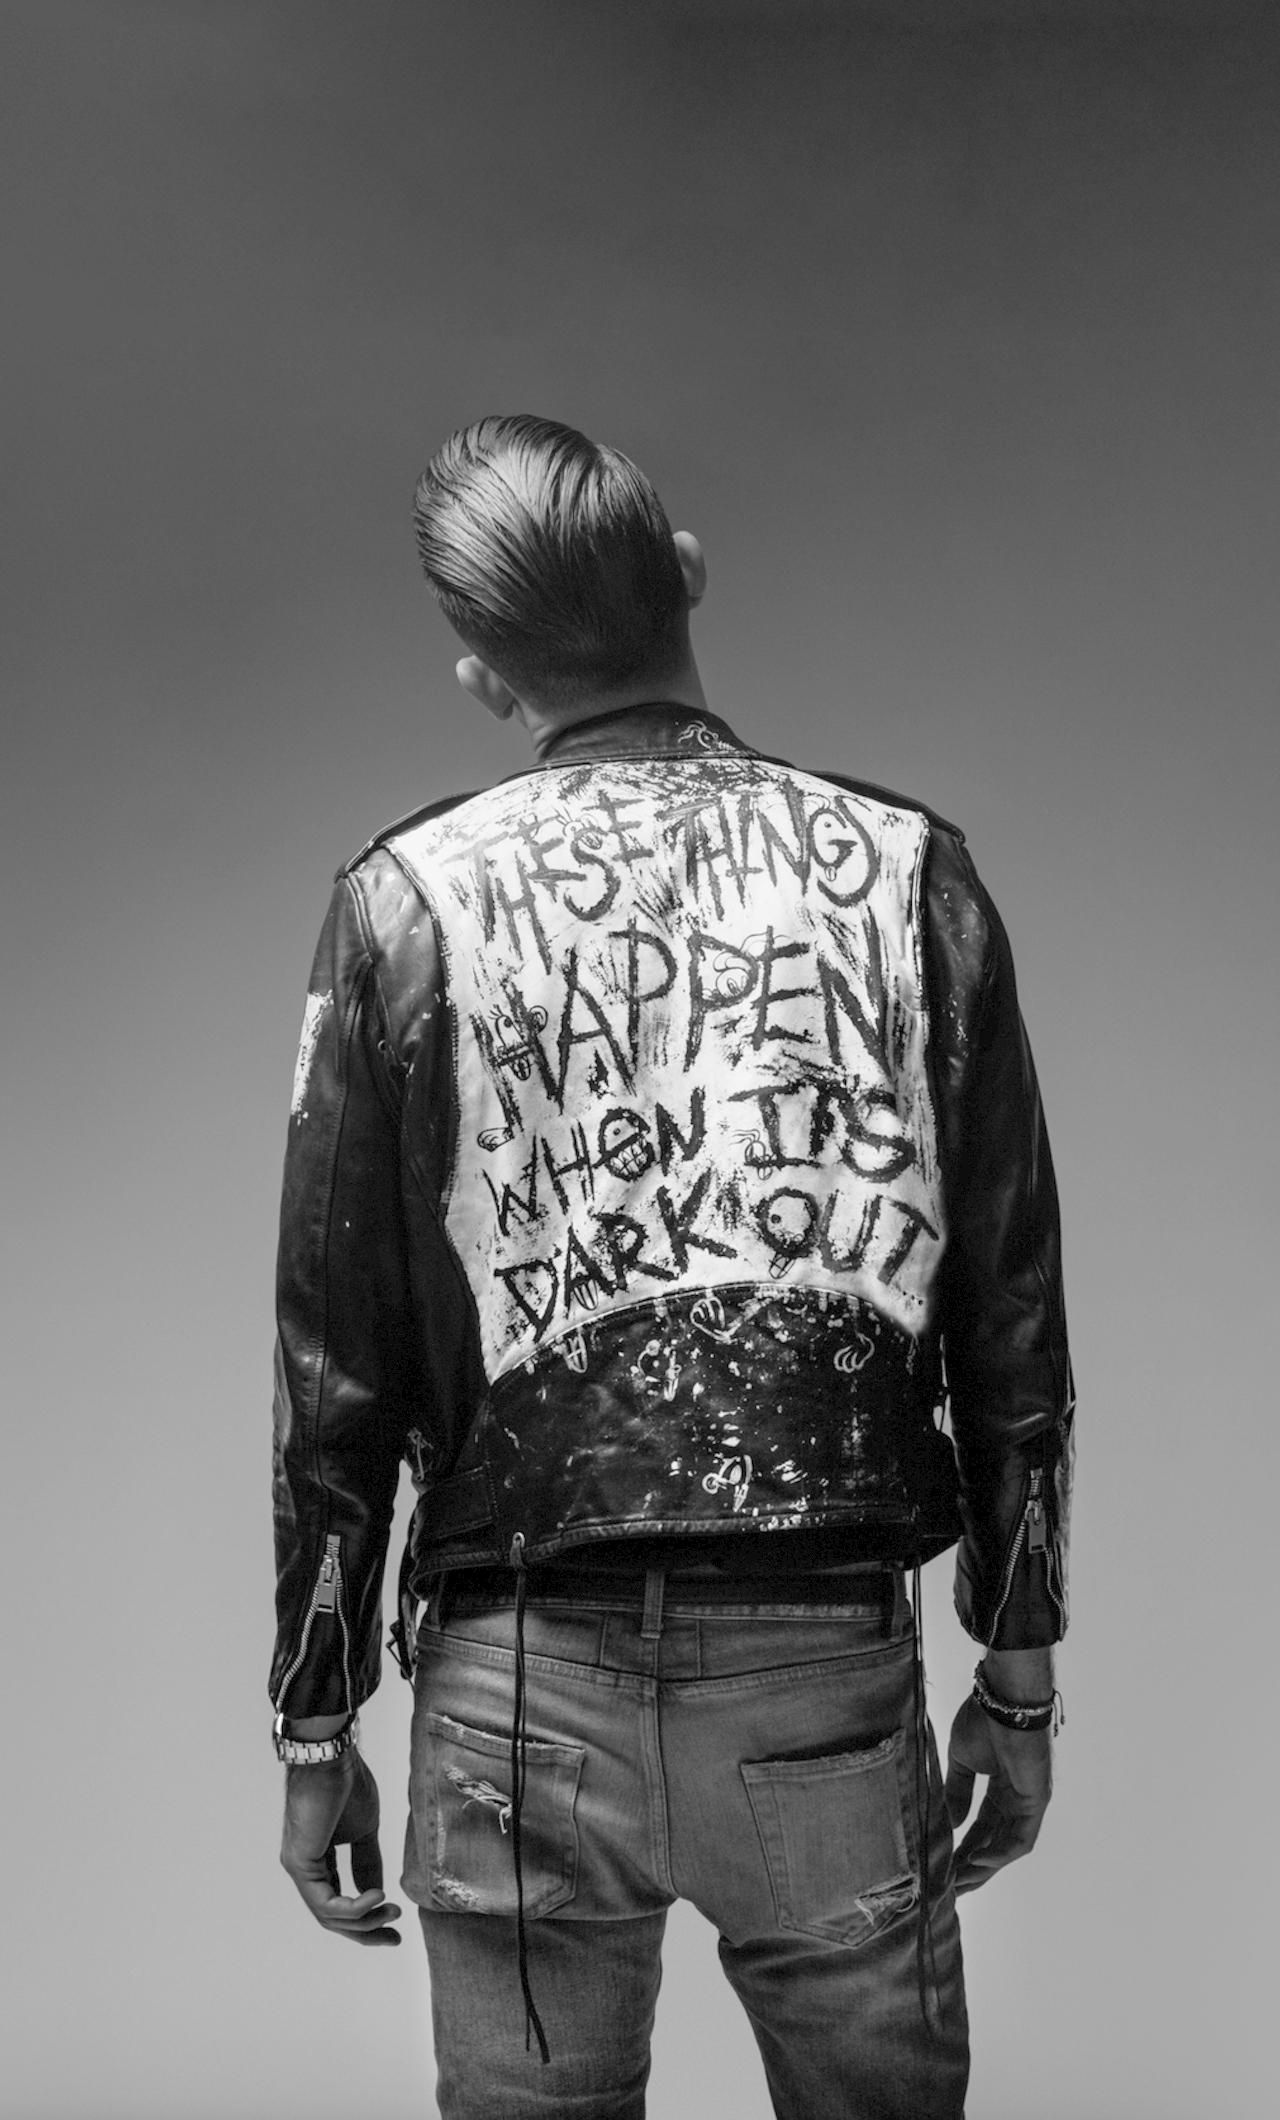 Free G Eazy Wallpapers Background On High Resolution Wallpaper Festival Wallpaper G Eazy Style G Eazy Iphone Wallpaper G Eazy